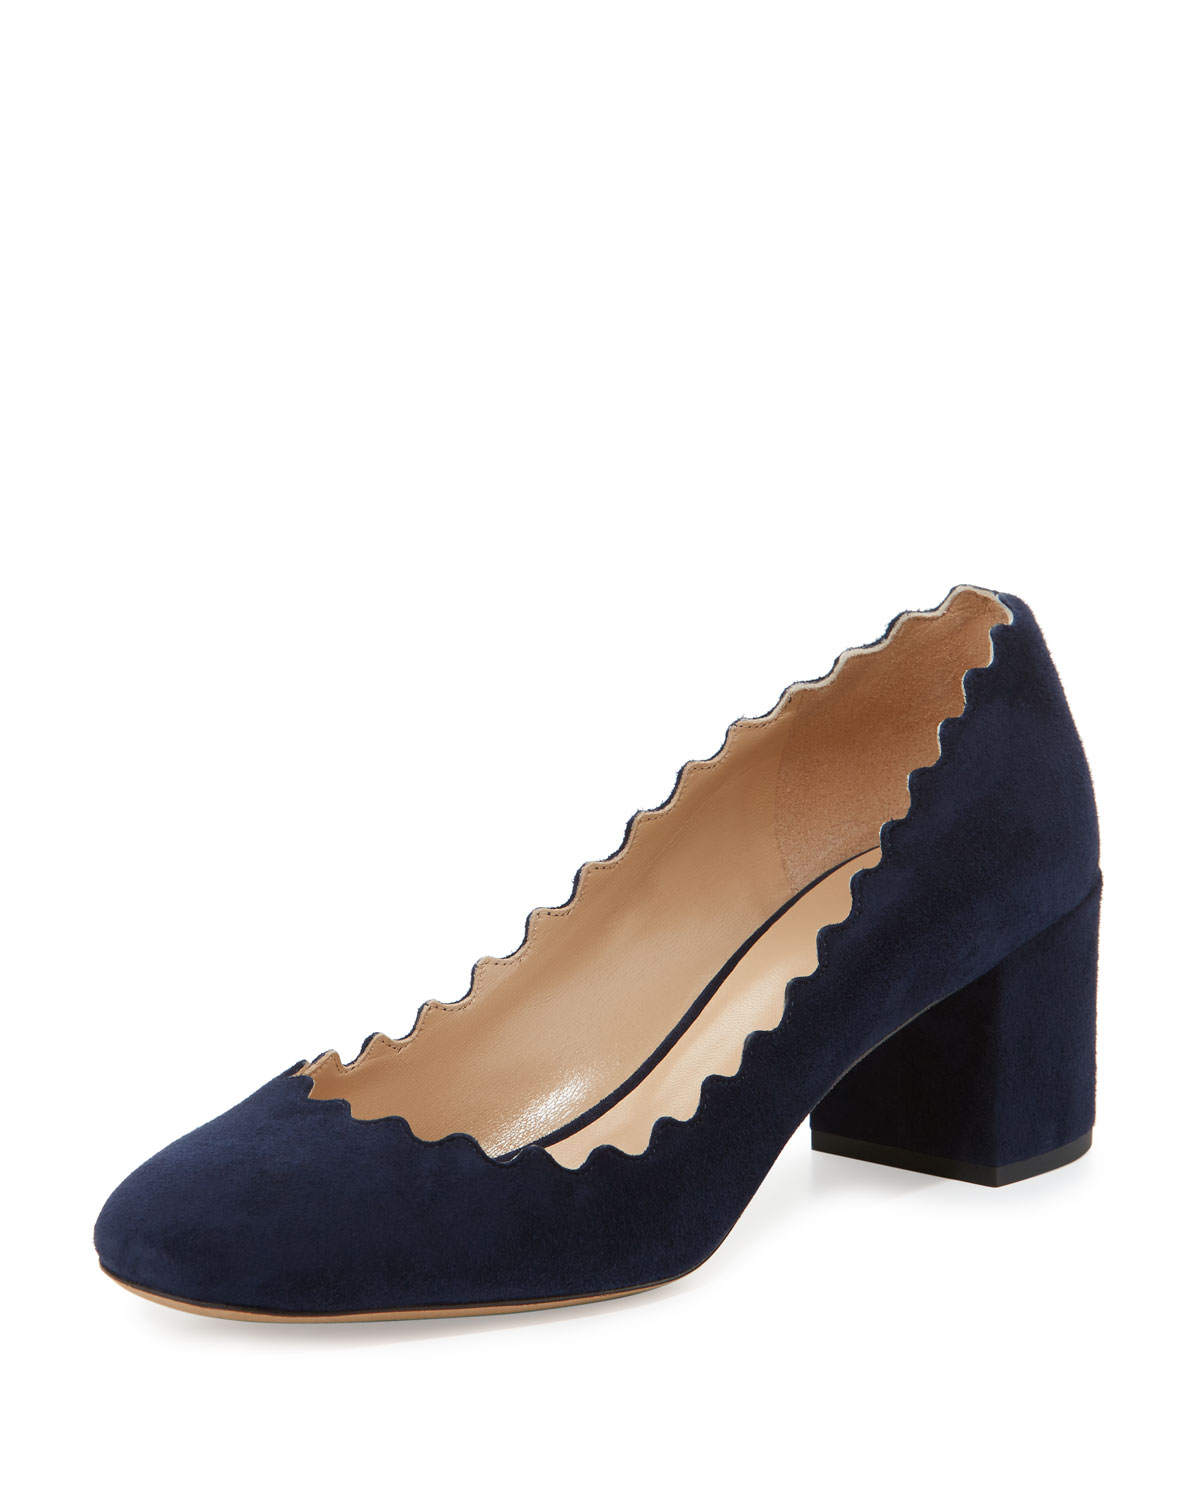 lauren-scalloped-suede-block-heel-pumps by chloe